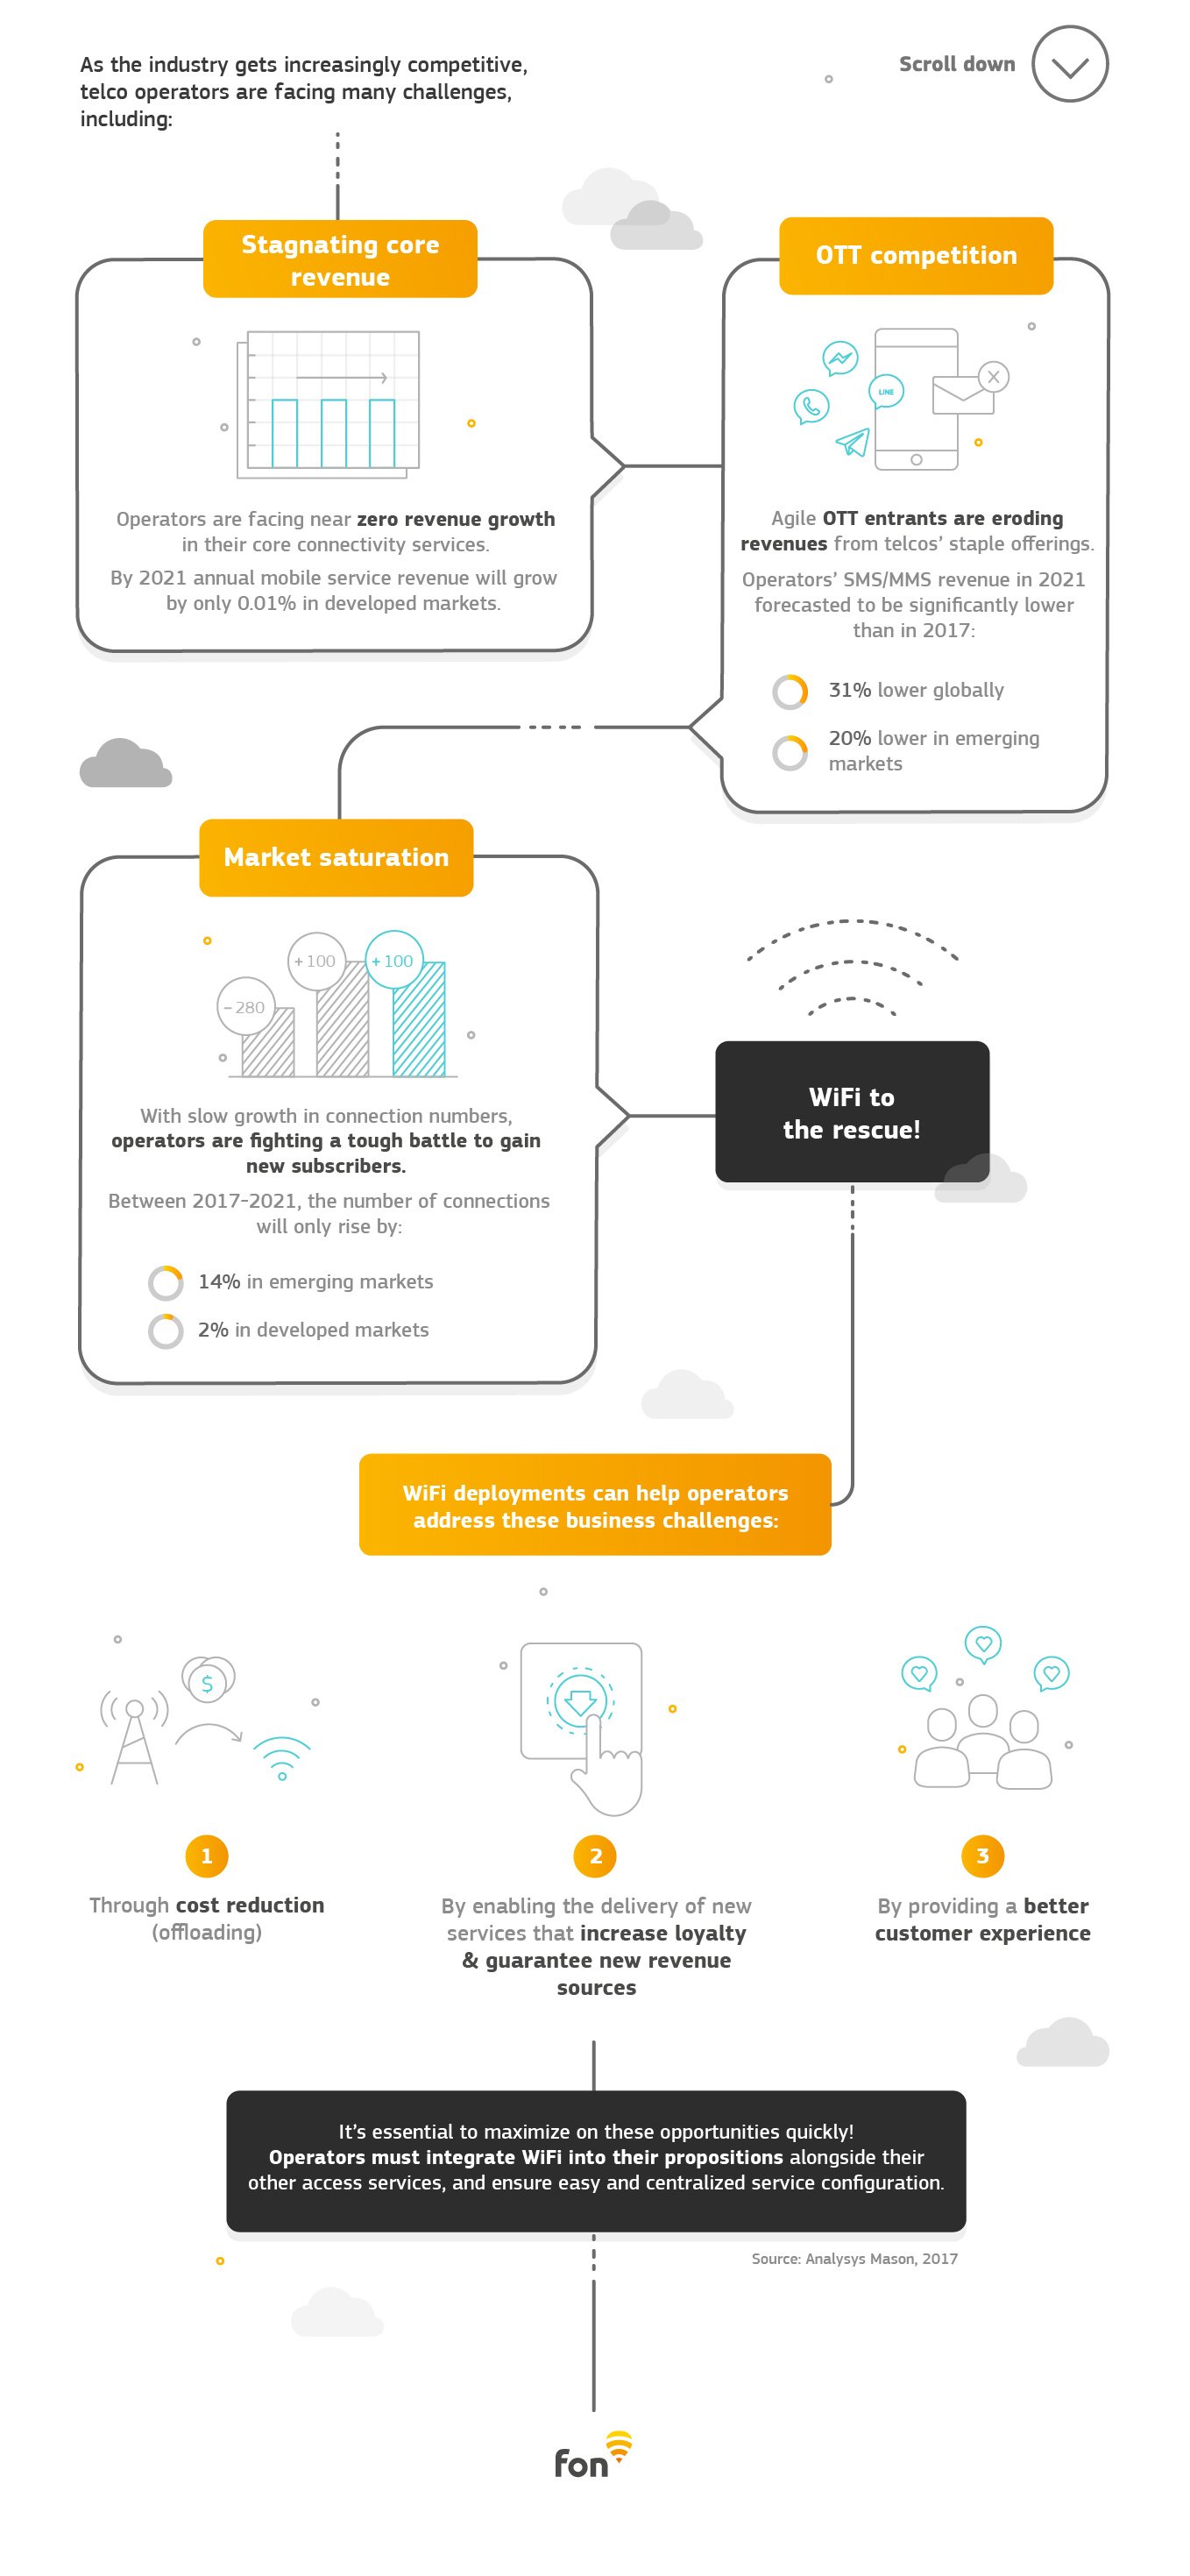 Fon infographic explaining how WiFi can be the silver bullet for operators in the face of industry challenges